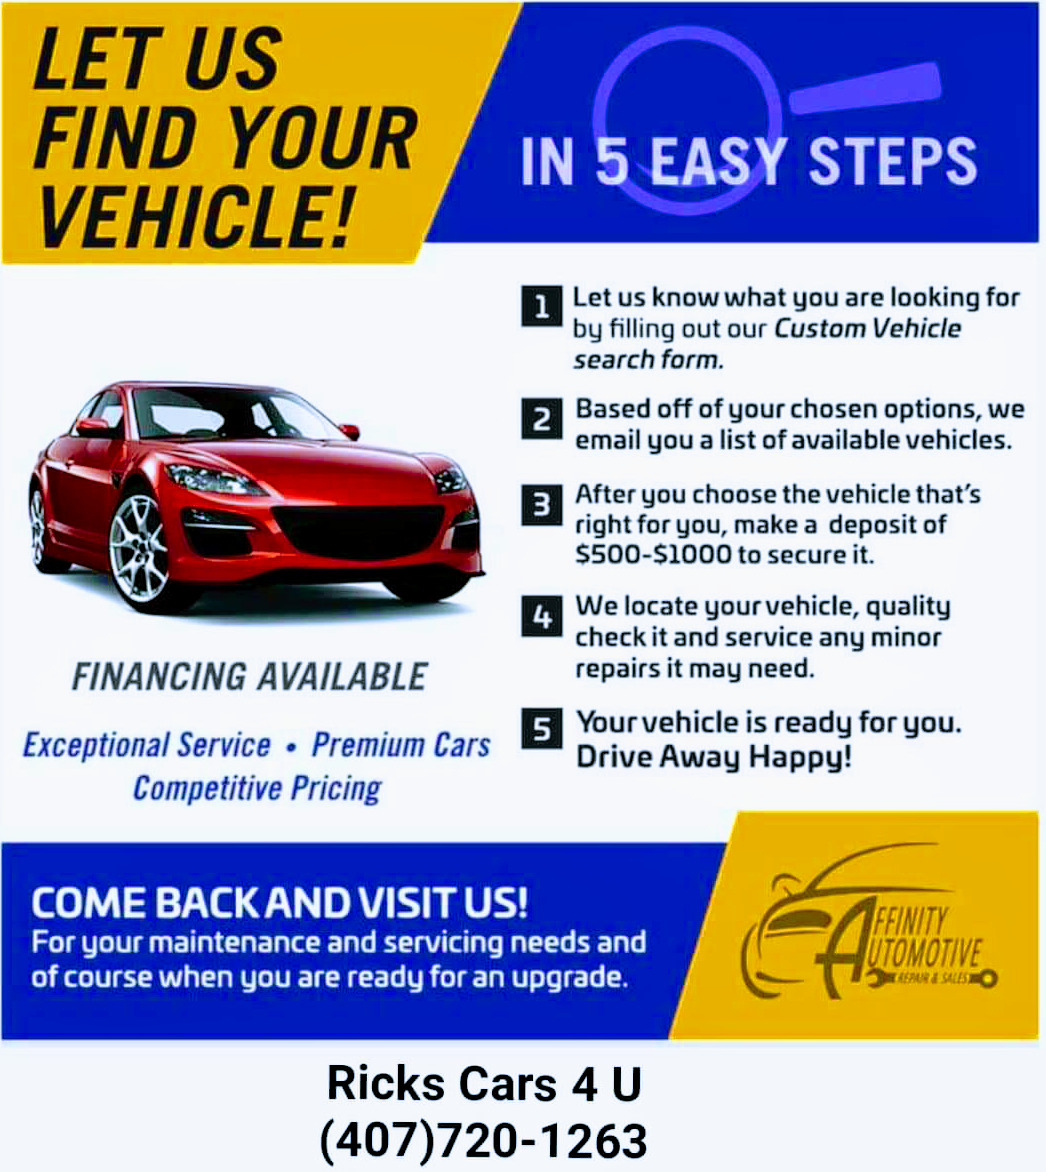 Cars For Less >> Buy Direct Your Pre Owned Suv Truck Or Cars For Less